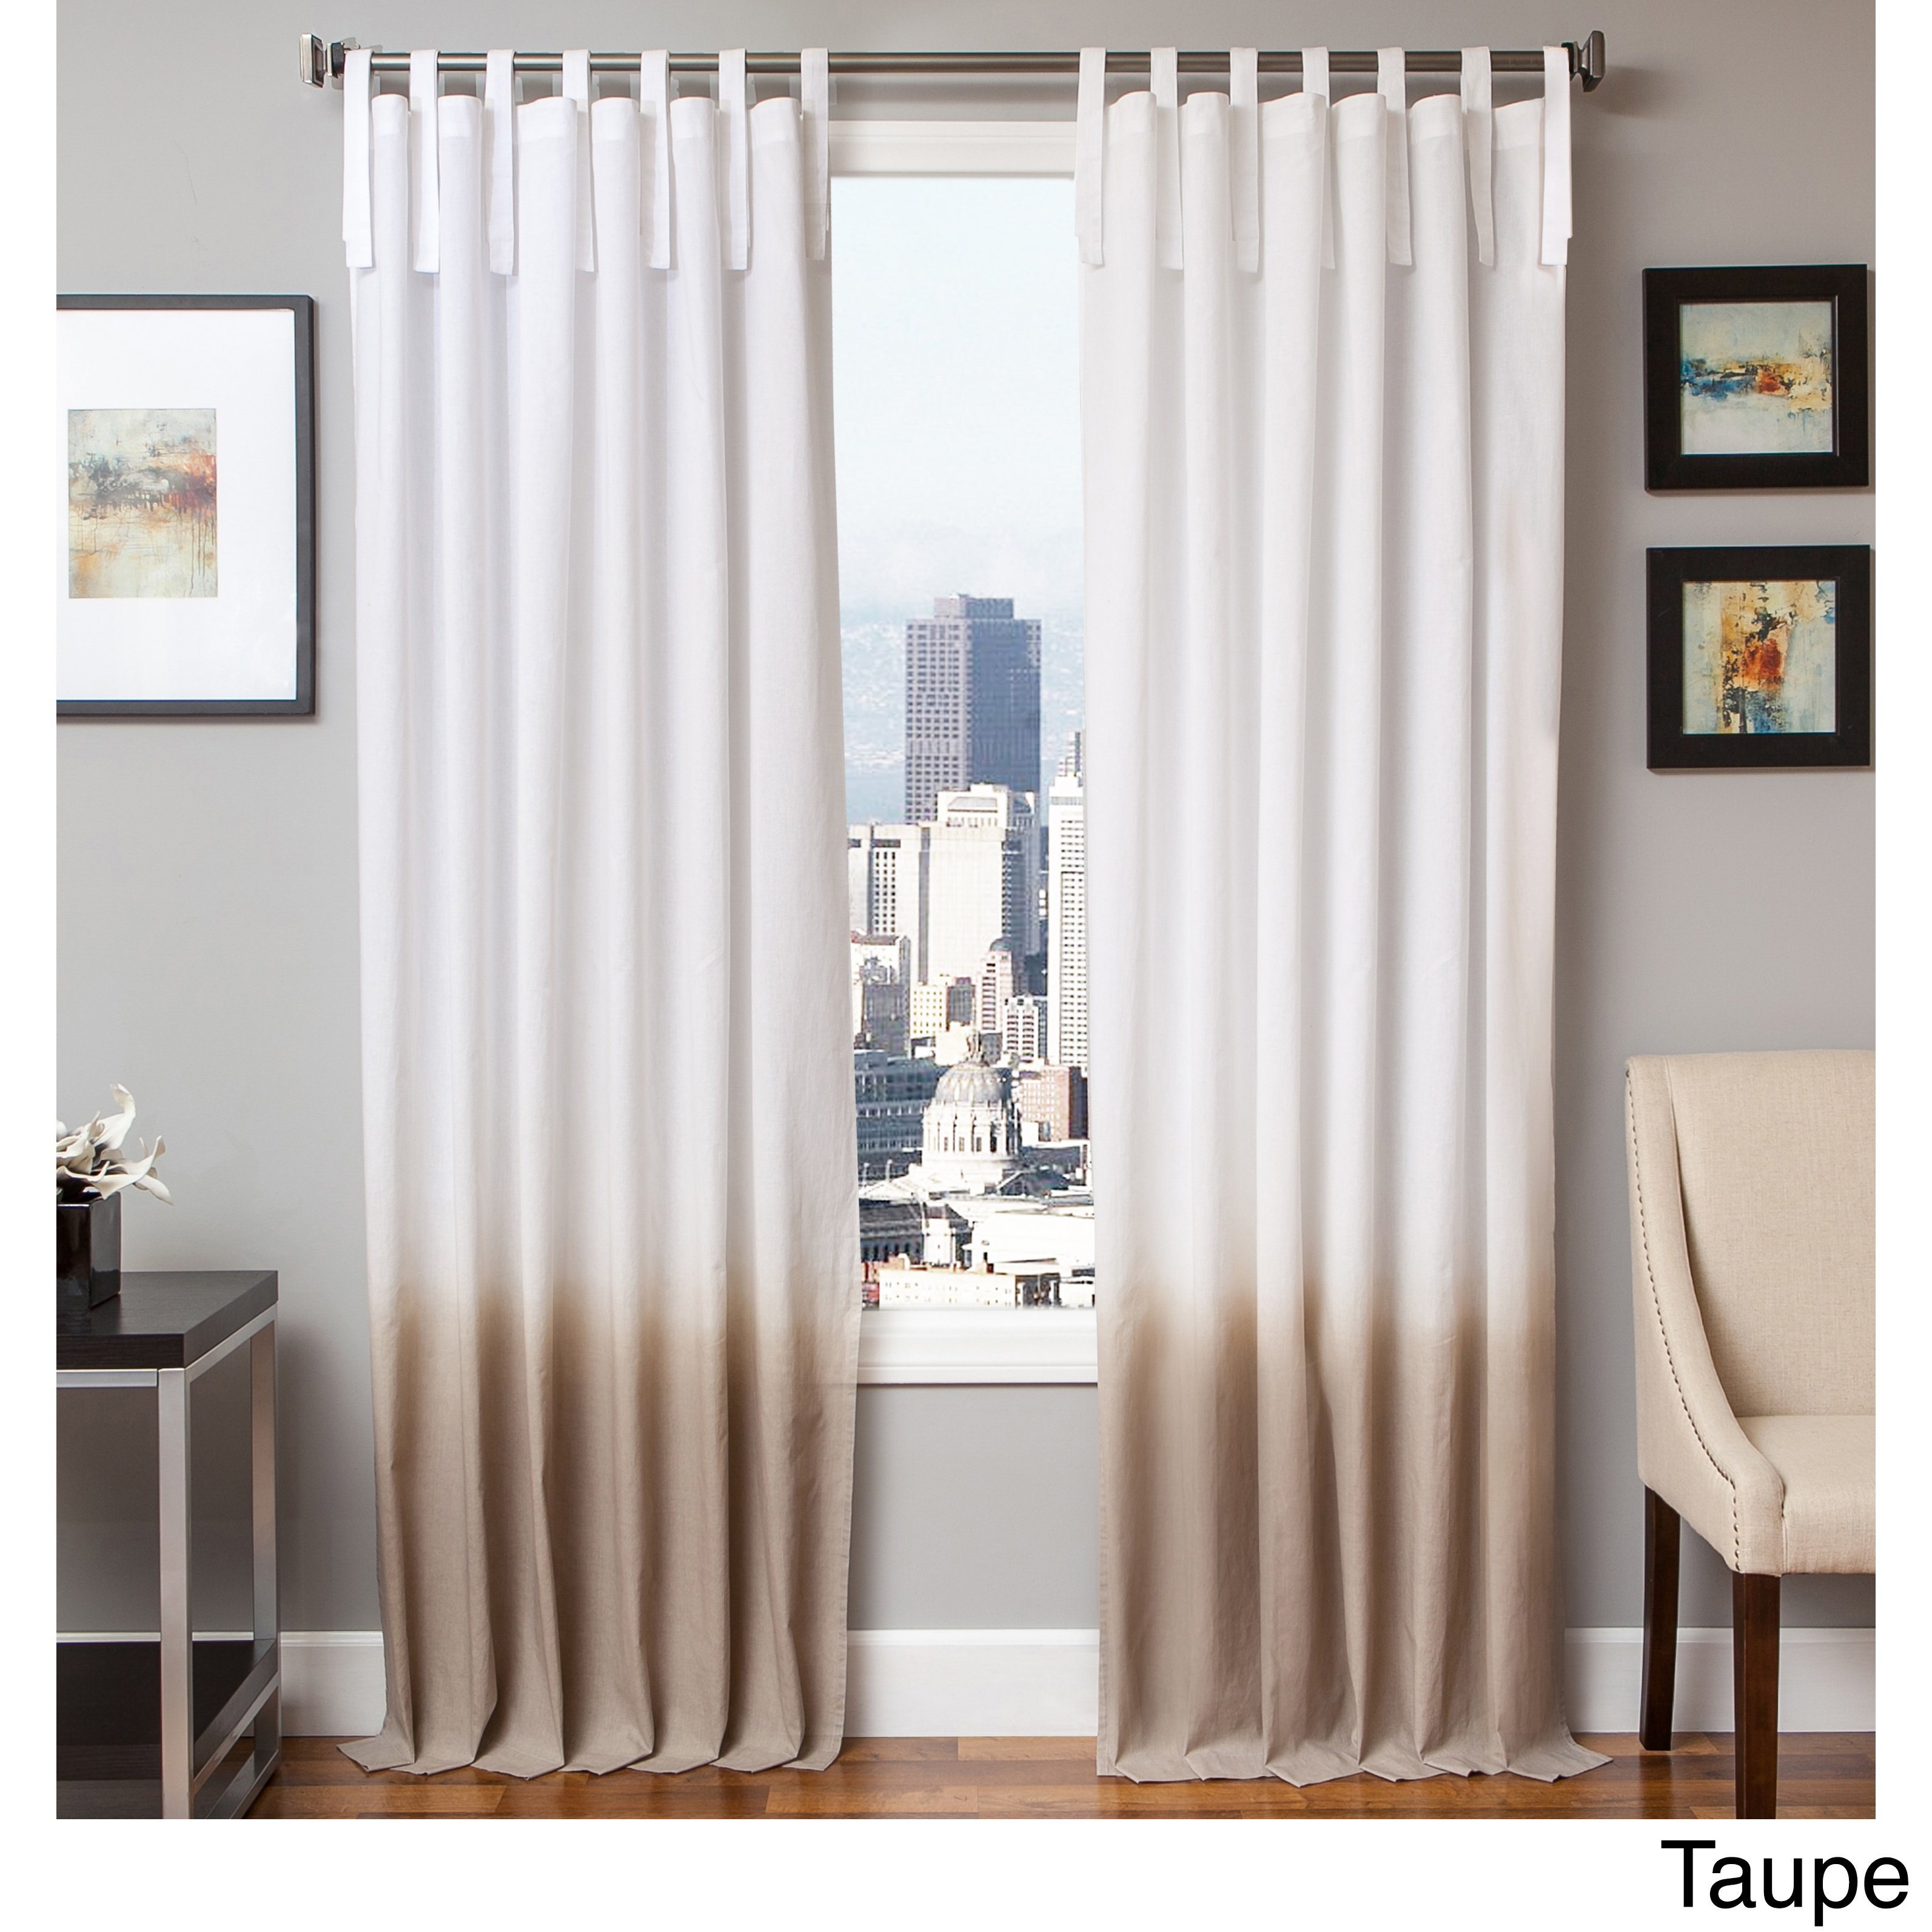 Cotton Curtain Panels Softline Tie Tab Ombre Cotton And Linen Curtain Panel